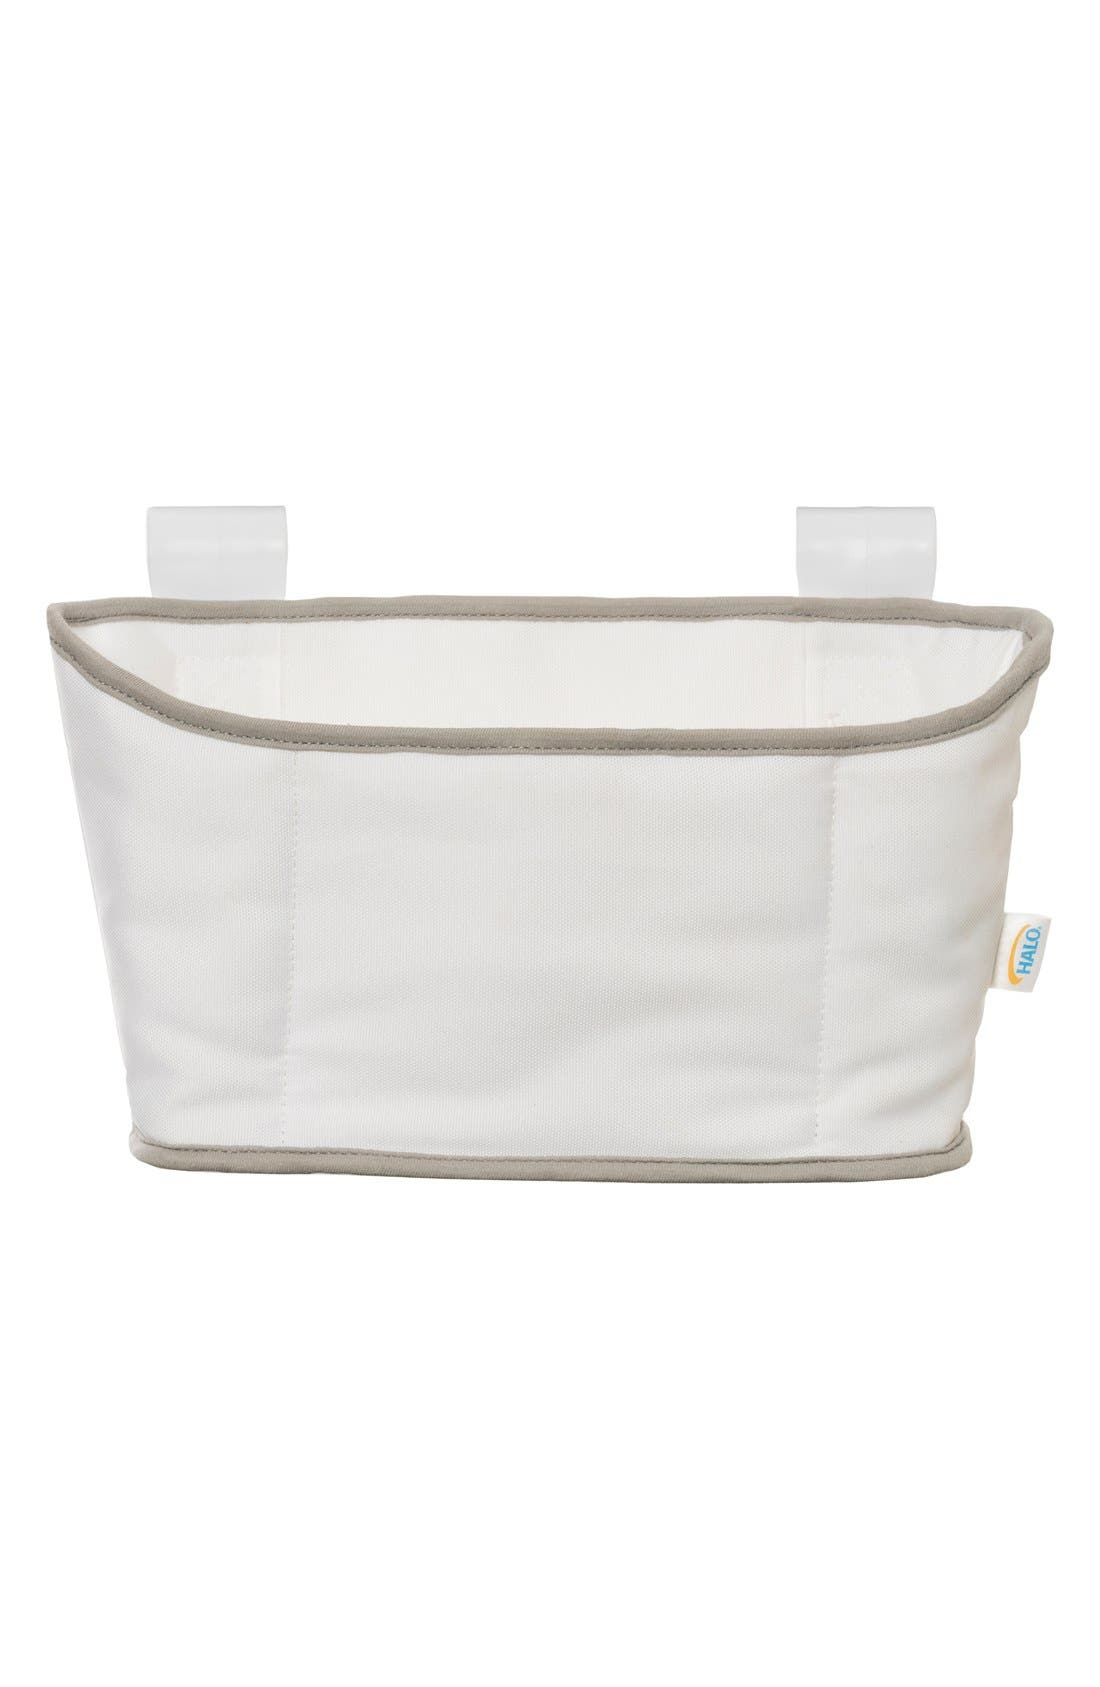 HALO<sup>®</sup> Innovations Bassinest<sup>™</sup> Storage Caddy,                         Main,                         color, White